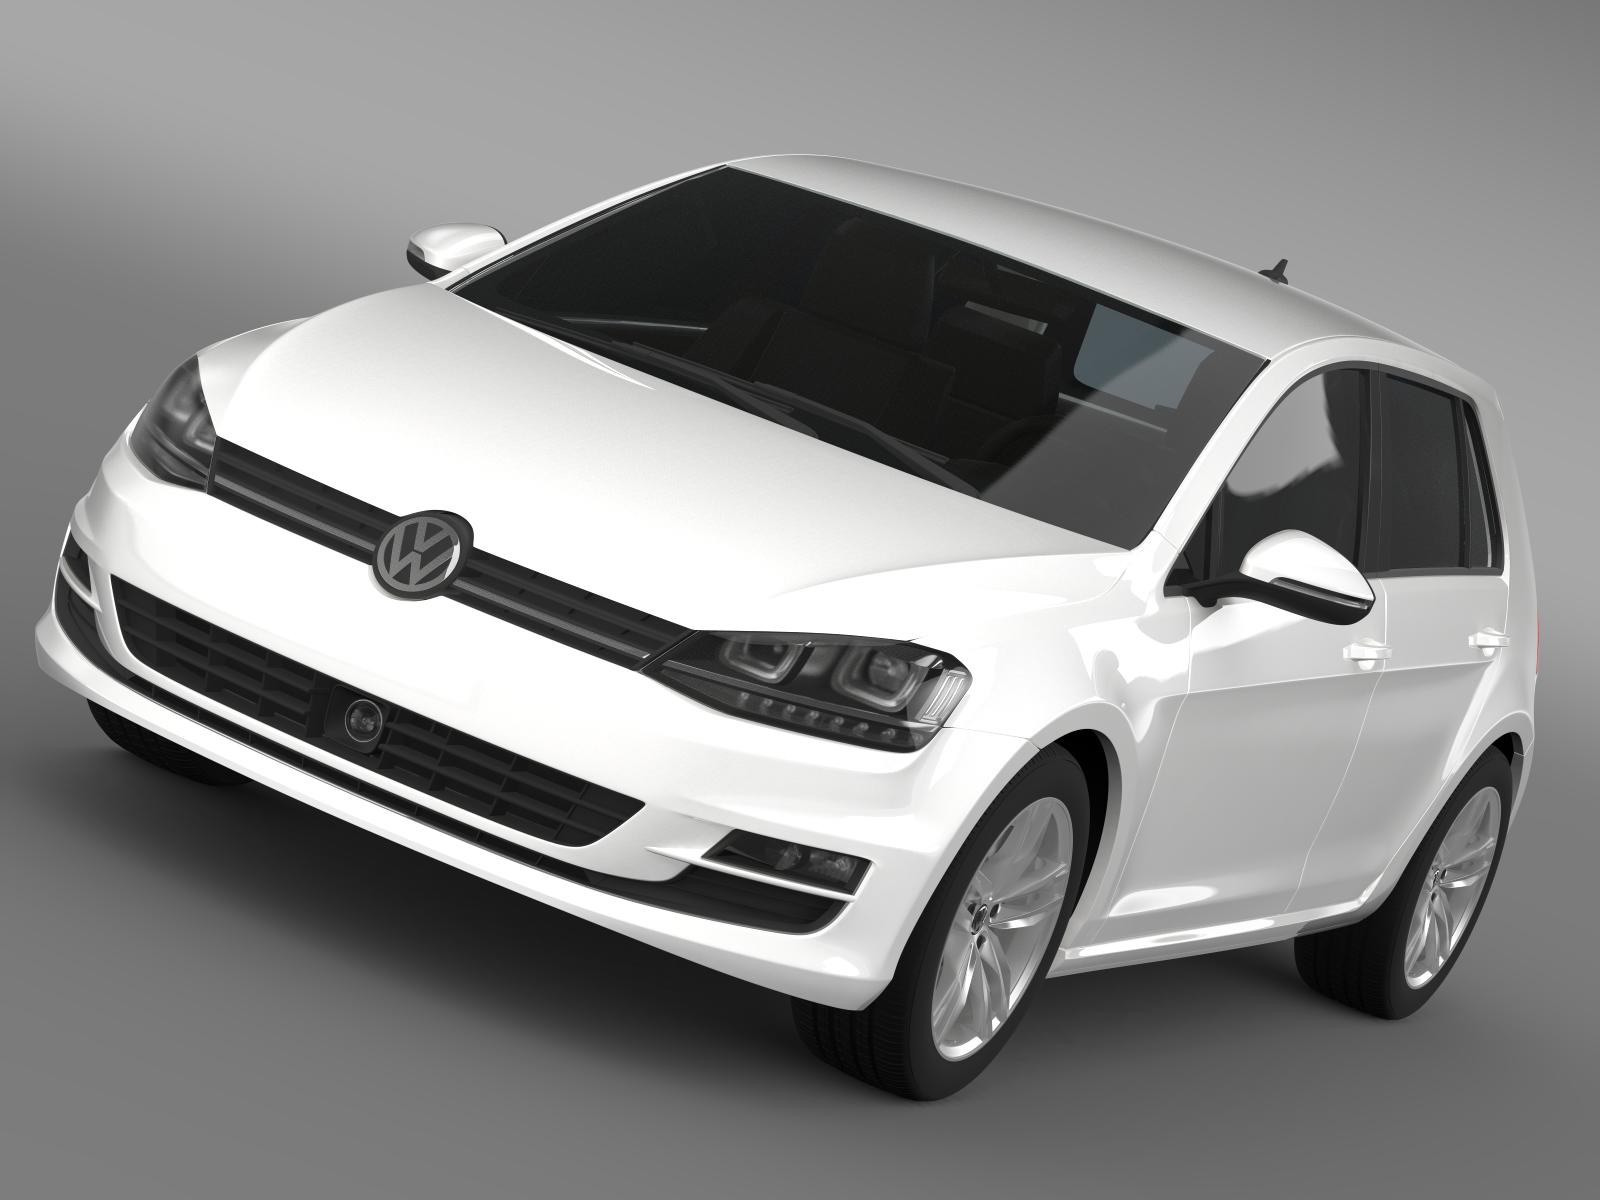 vw golf tdi 4motion 5d typ 5g 2013 3d model 3ds max fbx c4d lwo ma mb hrc xsi obj 165028